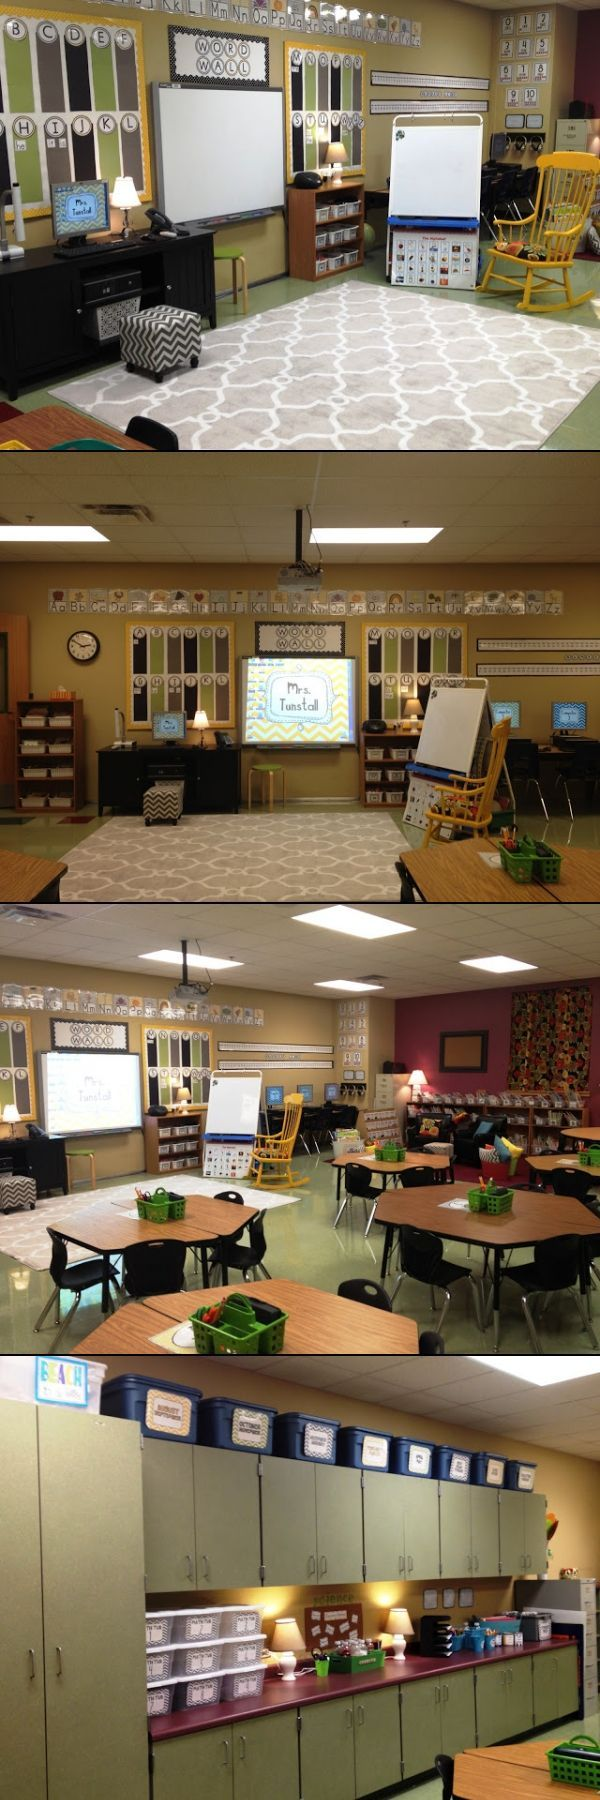 Classroom Design Ideas For Elementary ~ Best keeping up with classroom decor images on pinterest